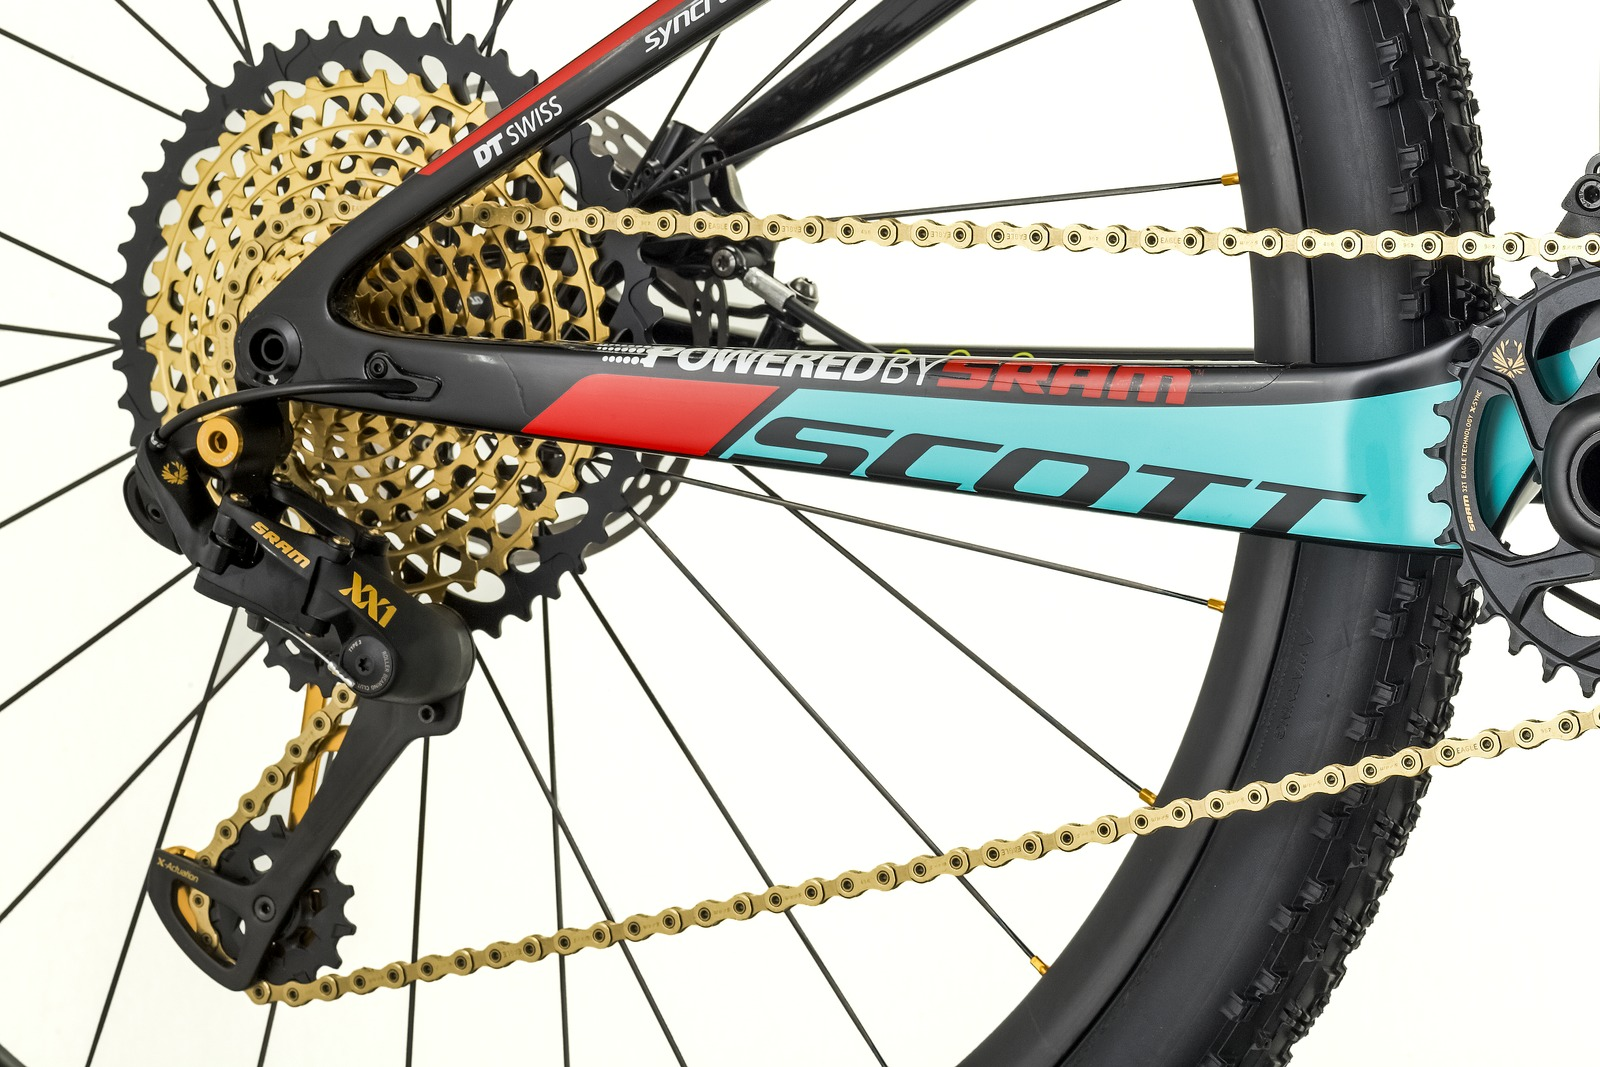 Contessa Scale RC 900 Worldcup - Drivetrain